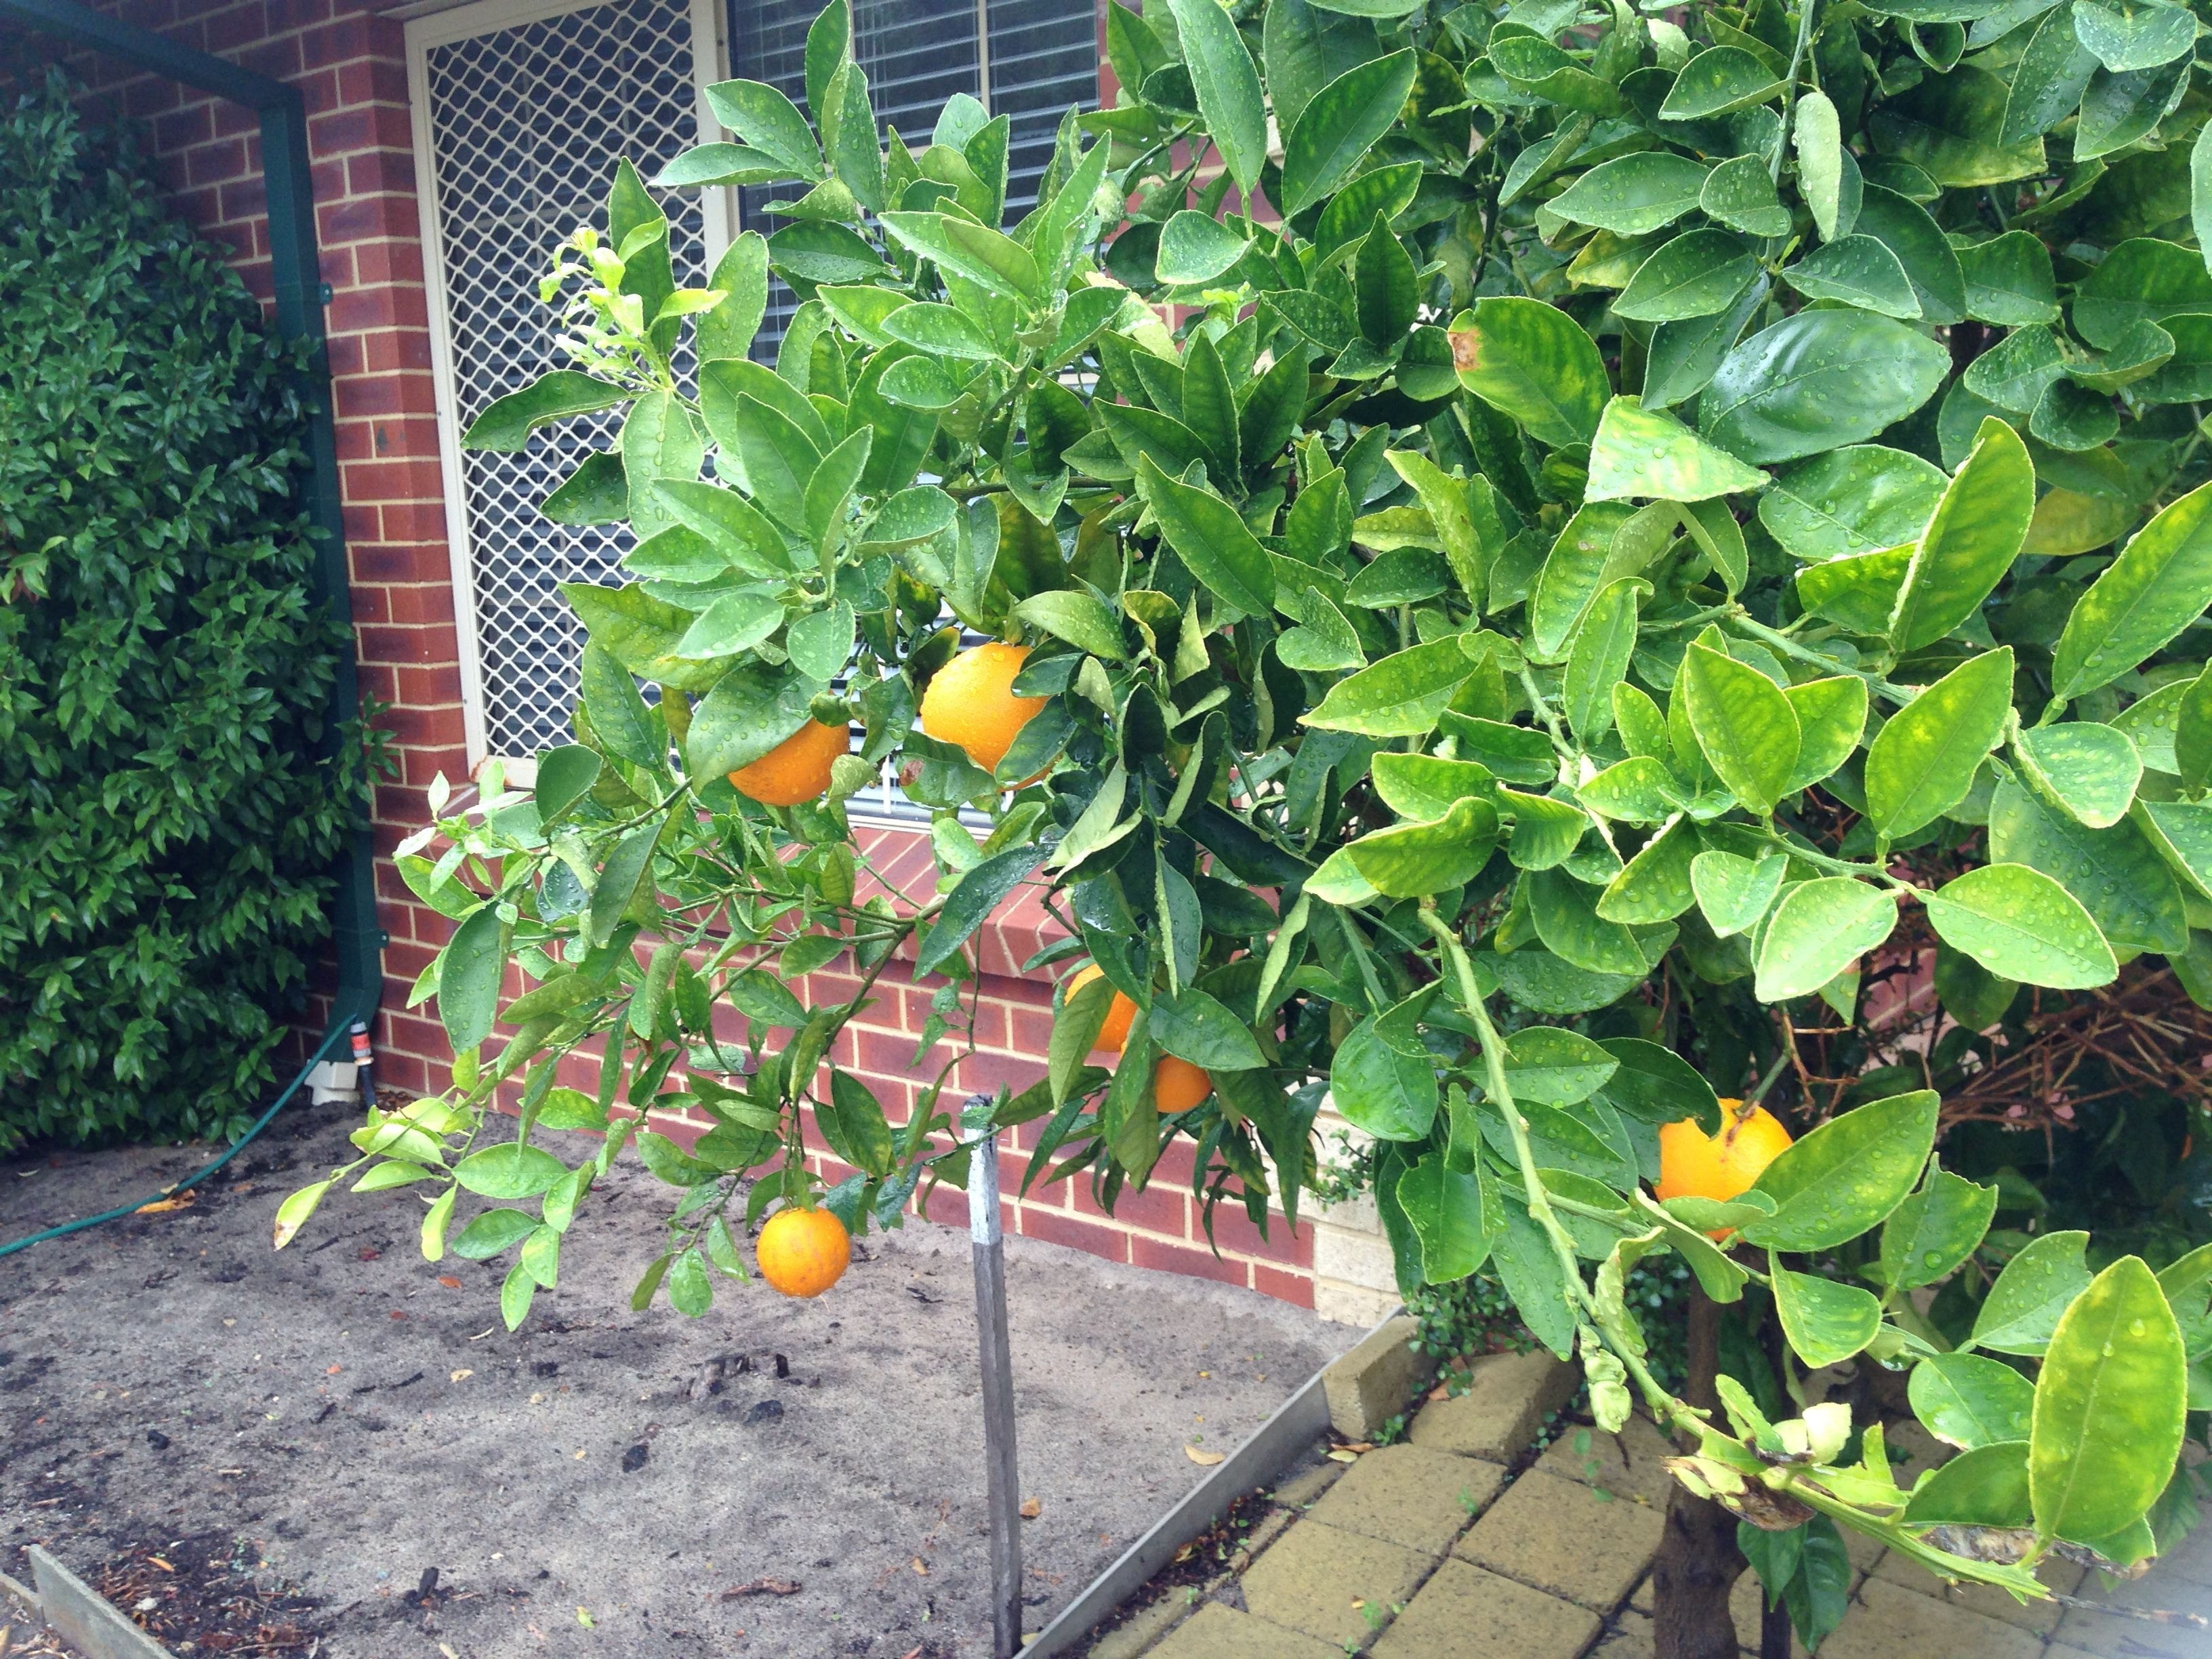 One of the 5 fruit-fruit trees in the garden.  This one had oranges and they were just delicious.